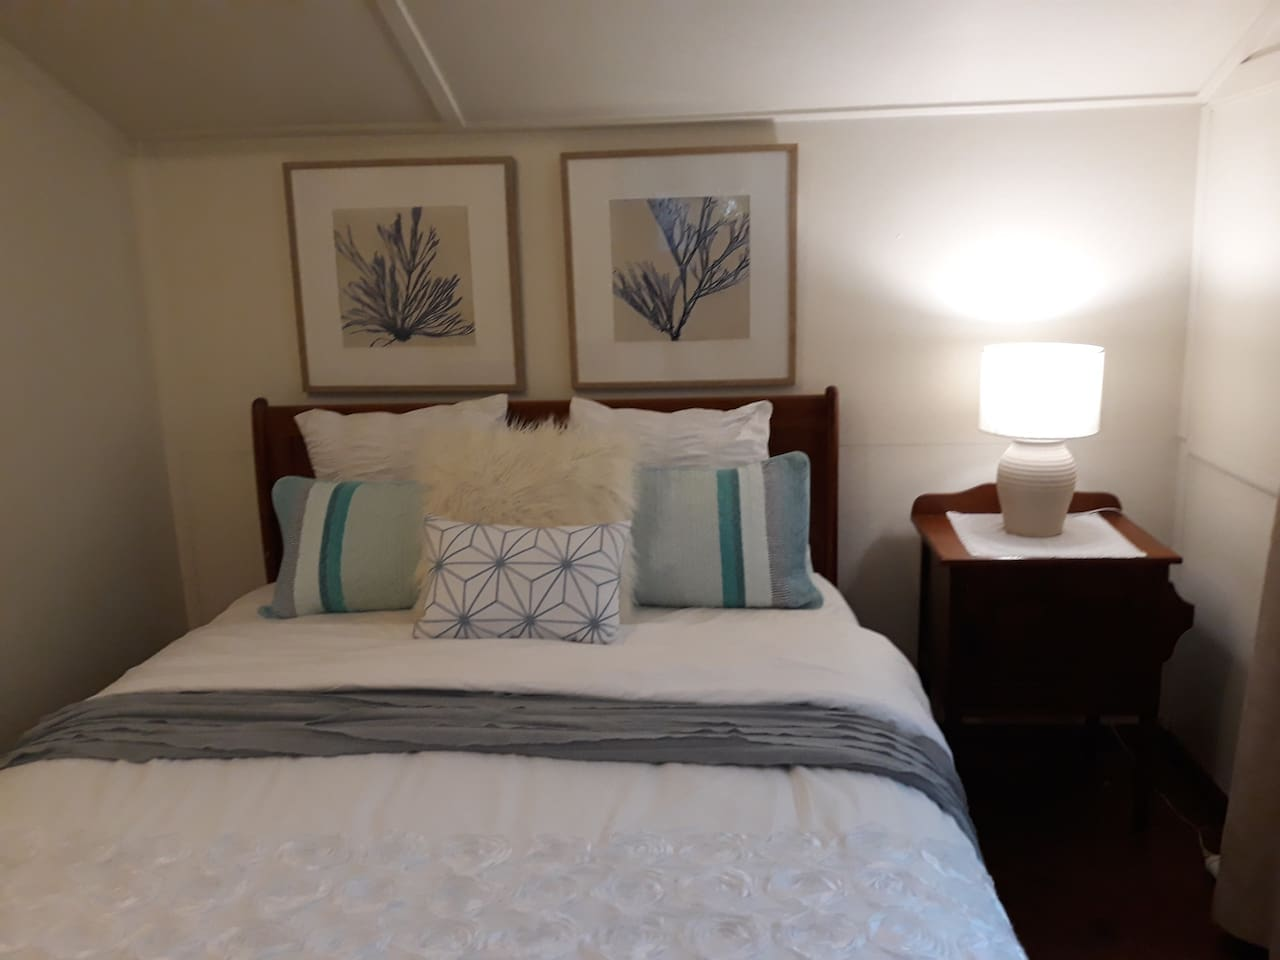 Comfy King sized bed with quality linens.